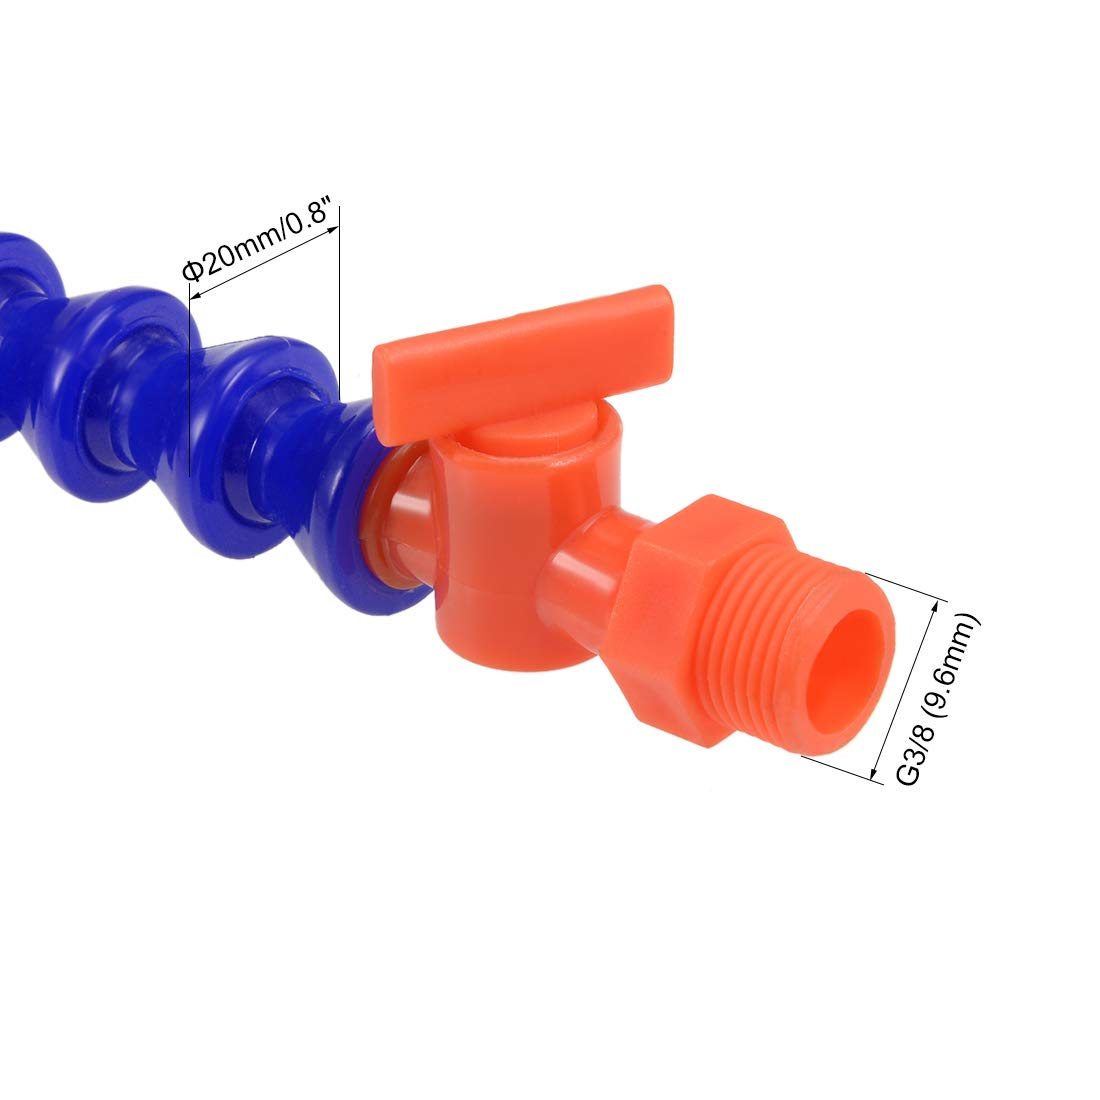 uxcell Flexible Coolant Pipe,G1//2 Thread Round Nozzle Flexible Water Oil Coolant Pipe Hose with Valve 300mm//11.81 inch Length 3Pcs